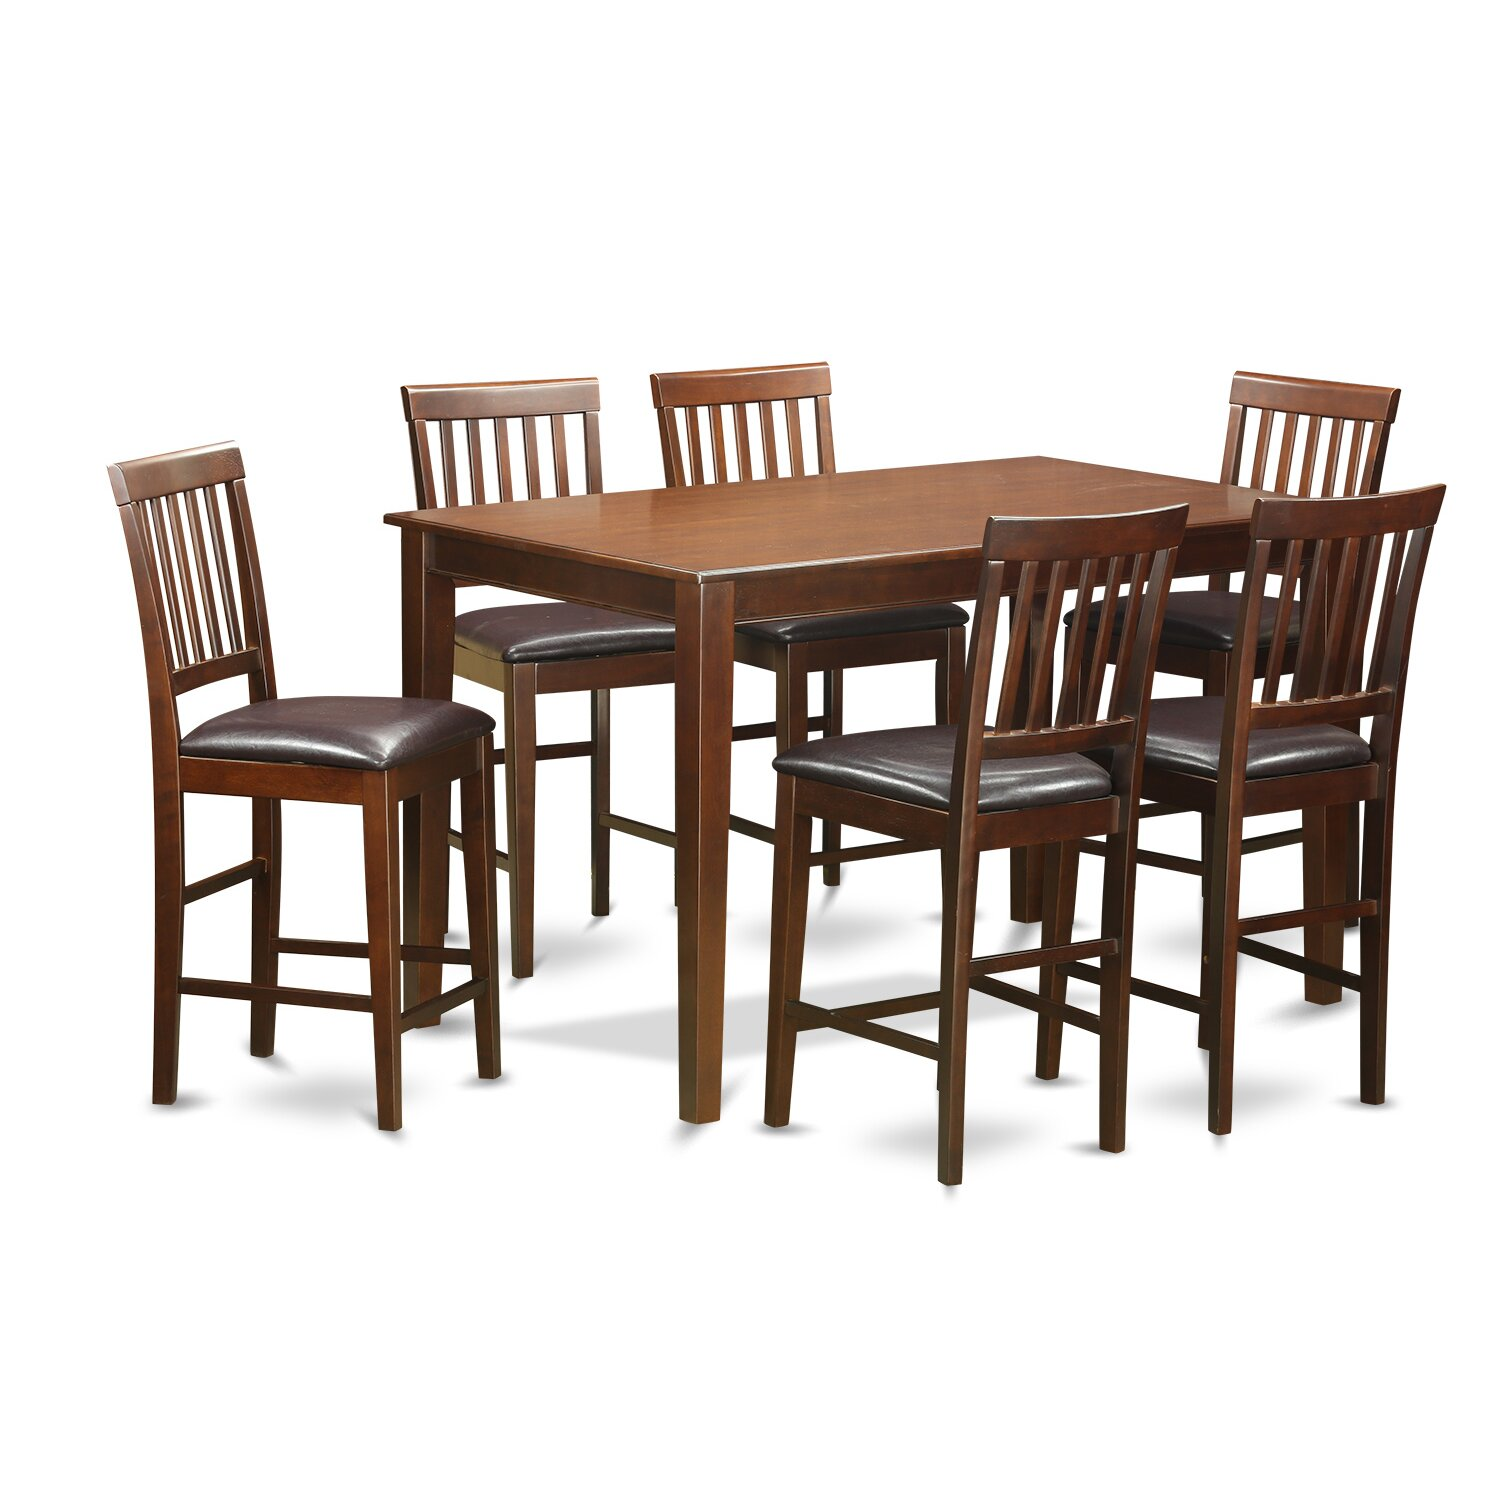 Wooden importers 7 piece counter height dining set wayfair for Counter height dining set